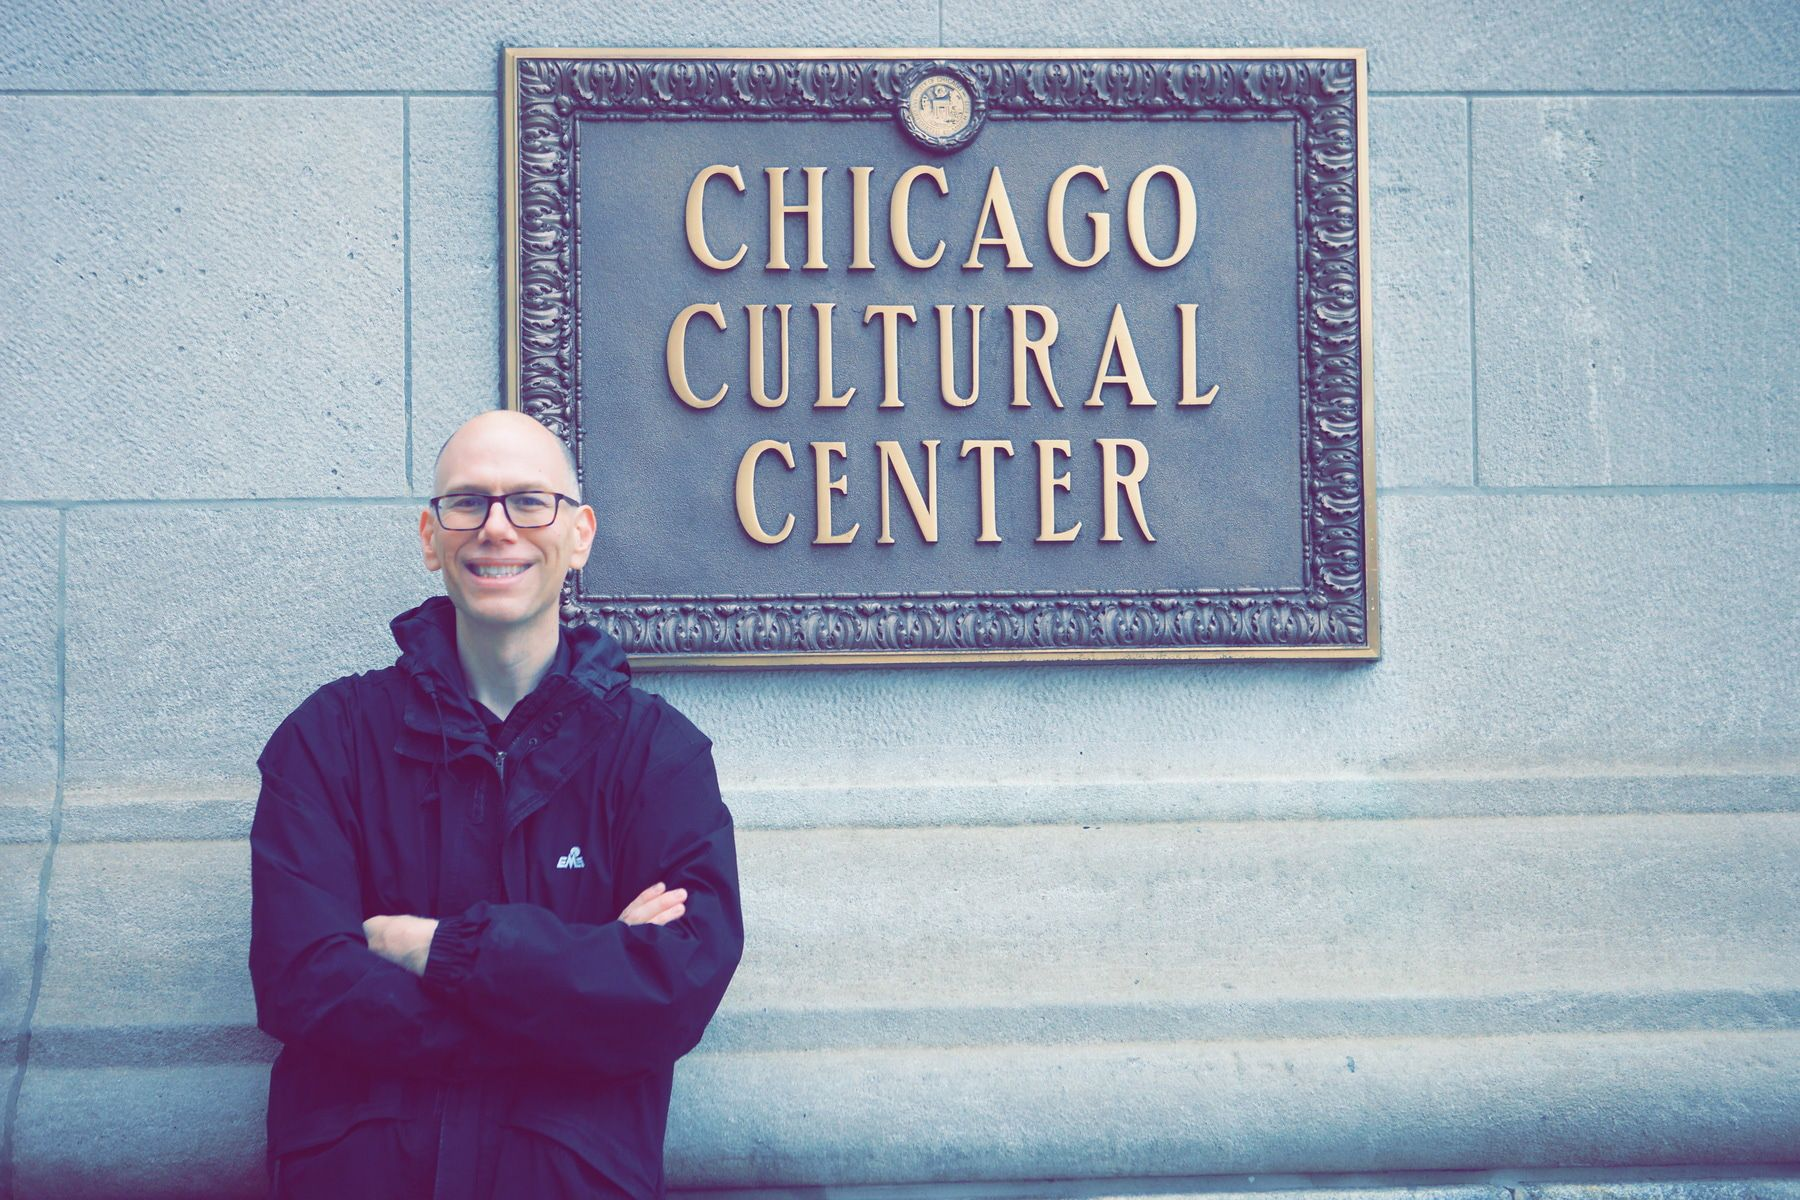 Chicago Is Gorgeous - Art, Architecture, Cocktails, Loop